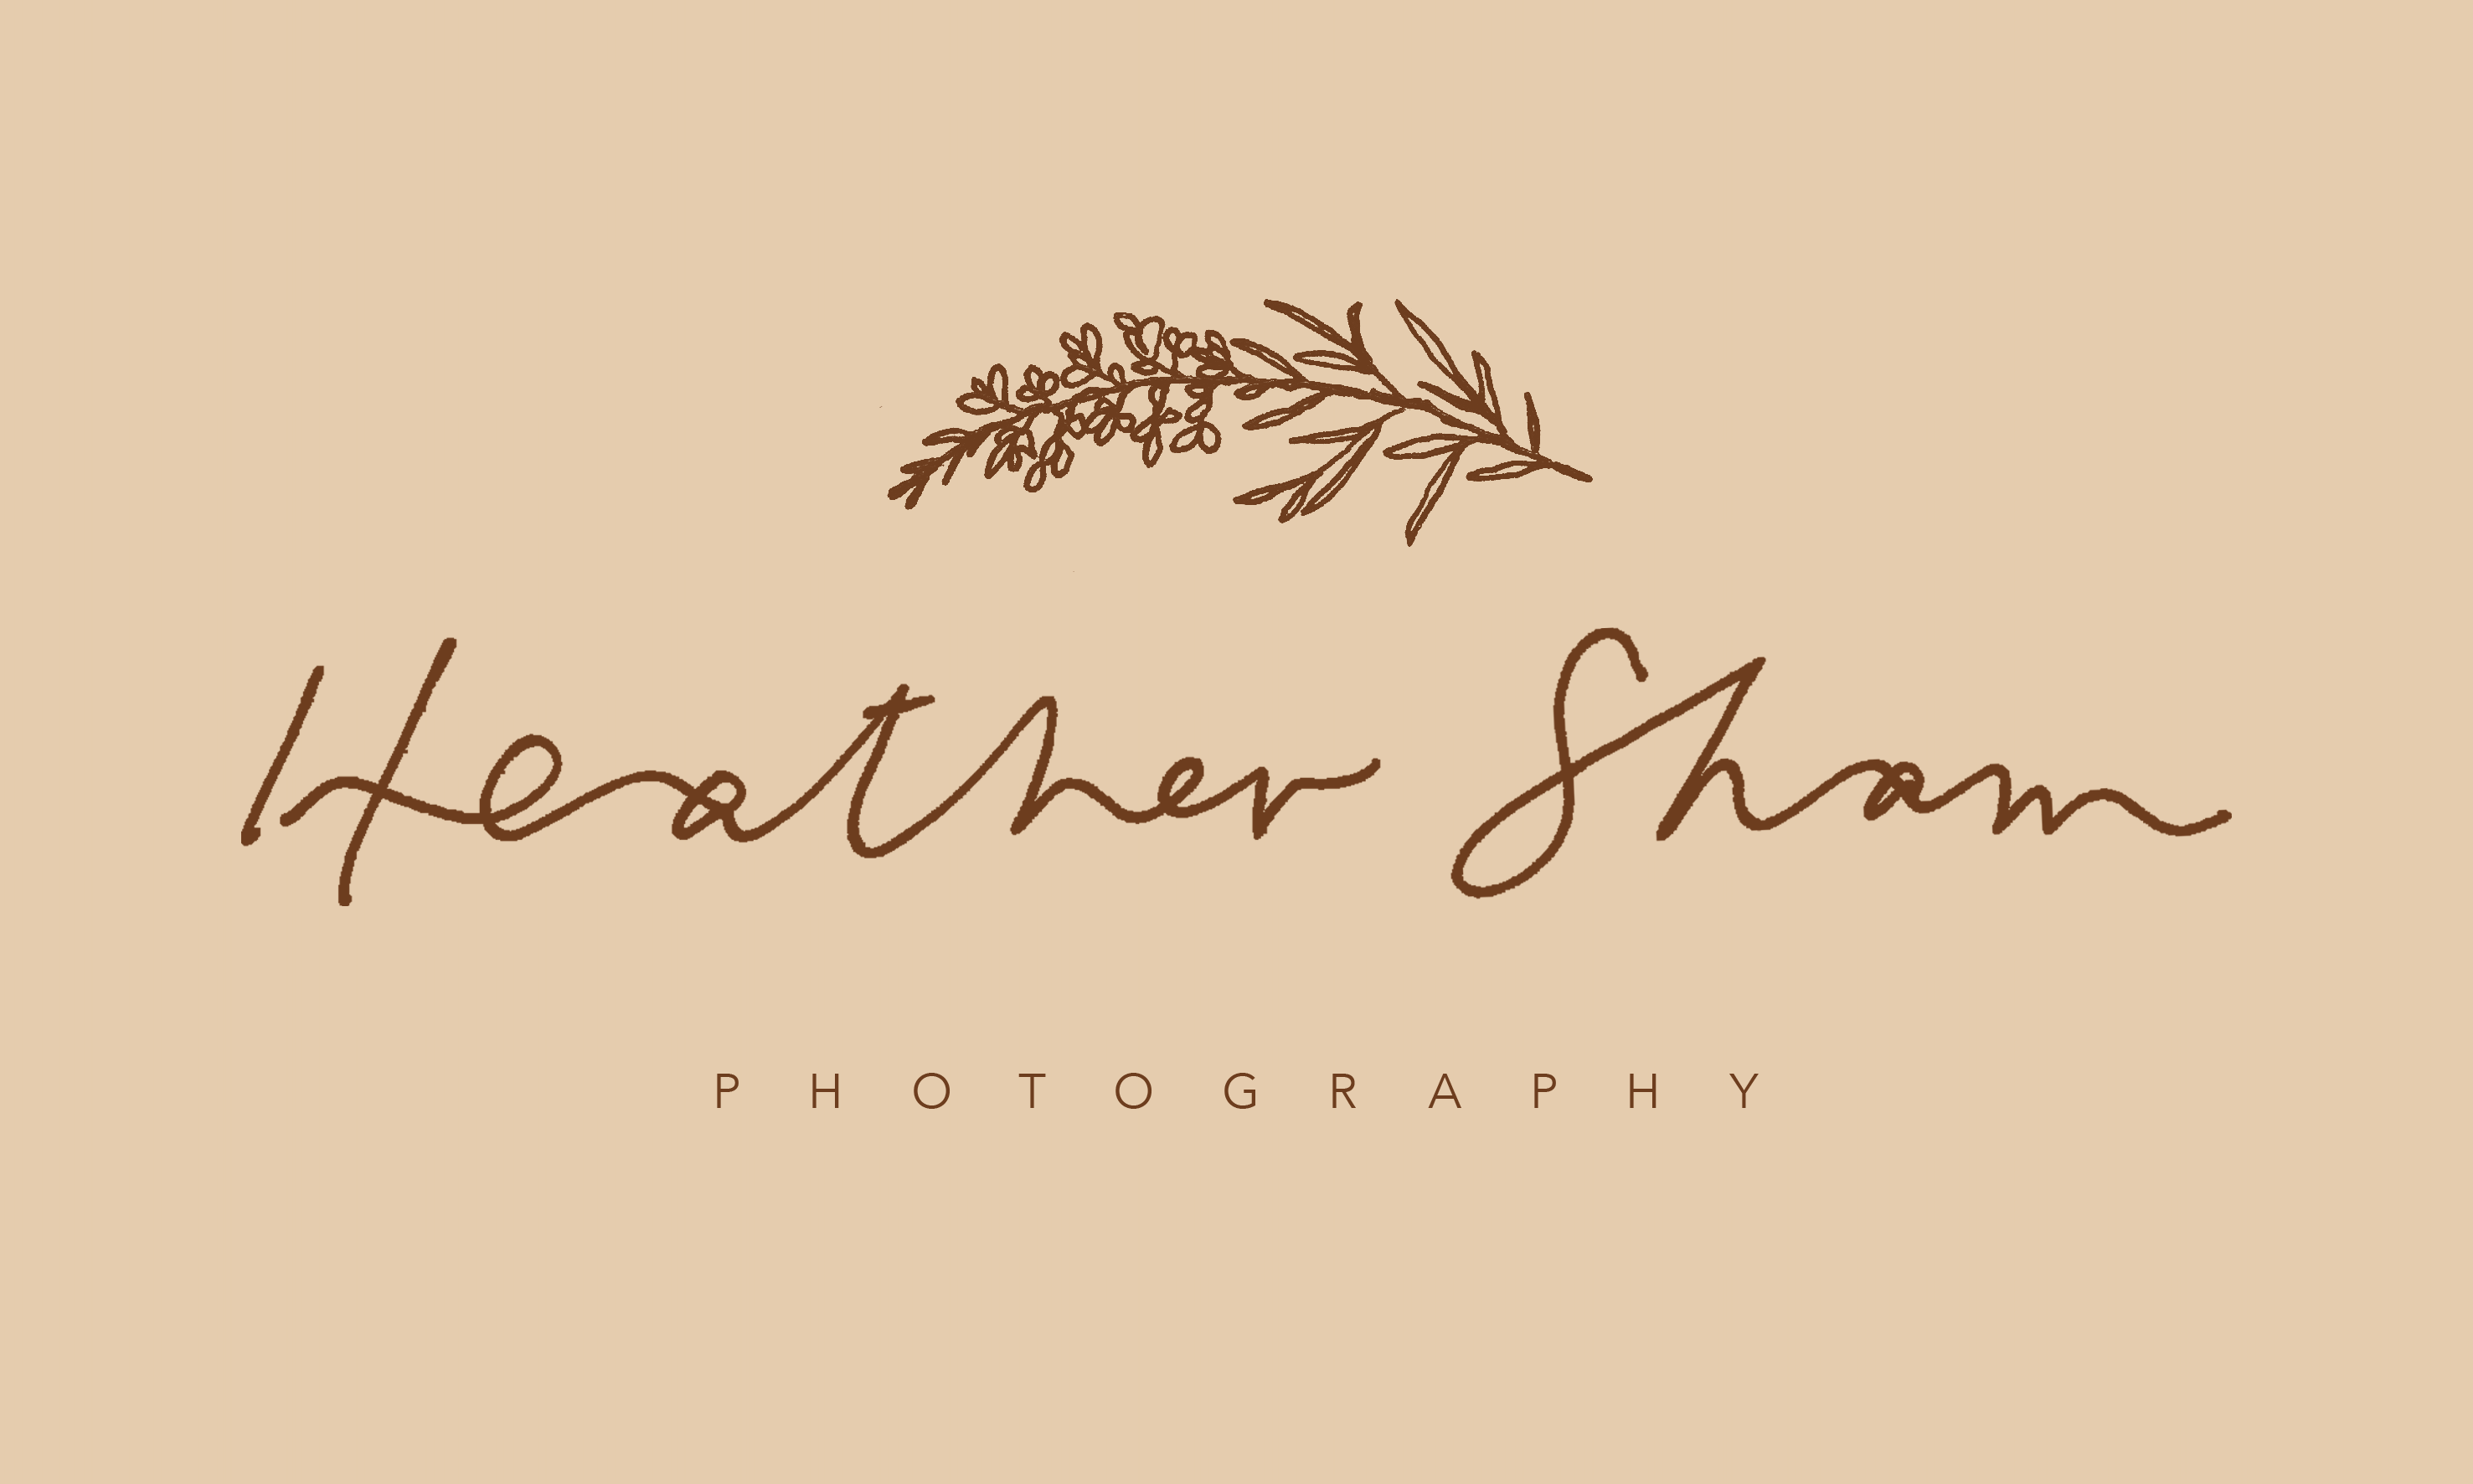 Heather Sham Photography